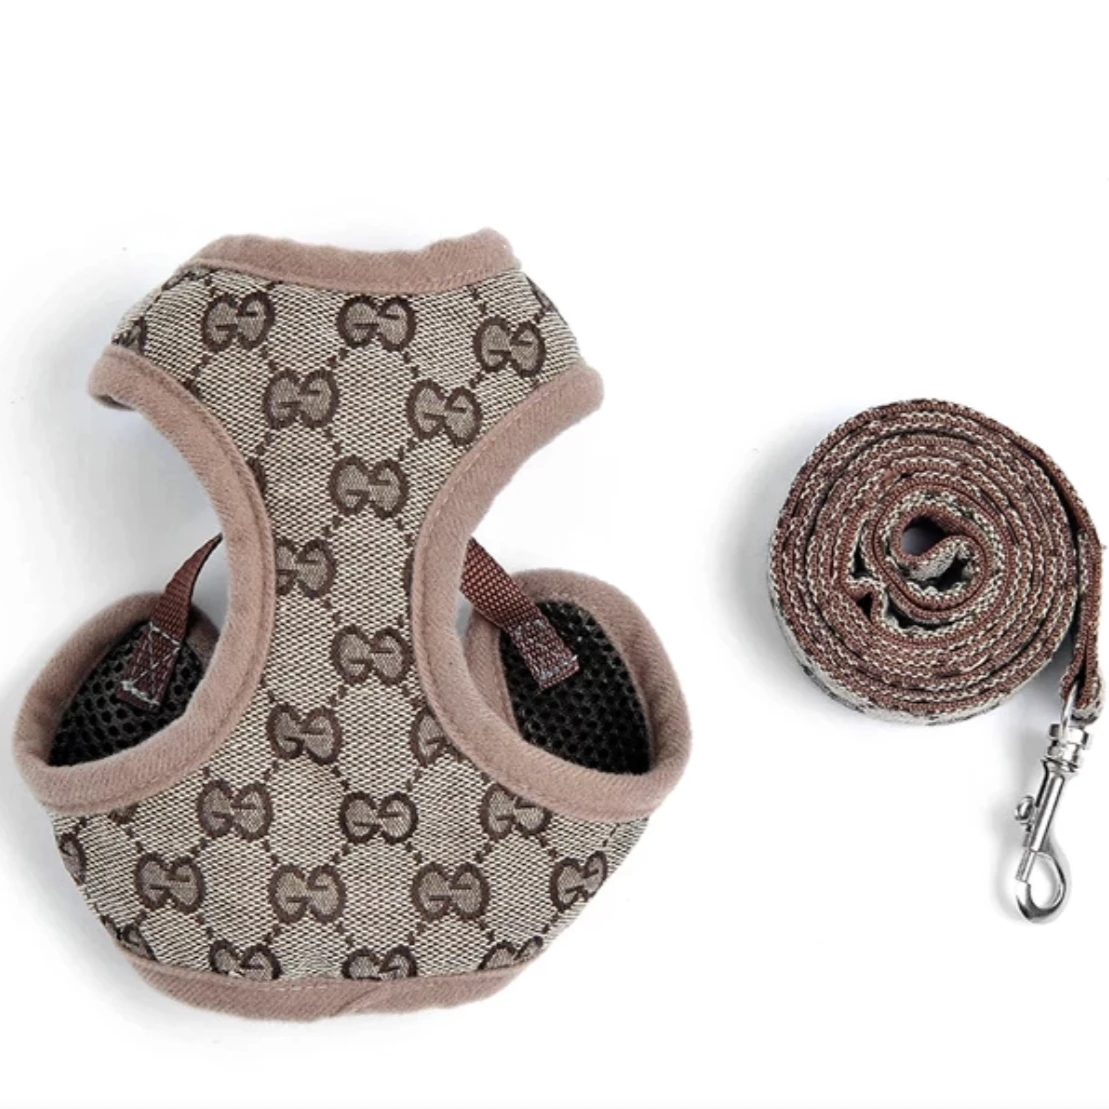 GiGi Harness and Leash Set